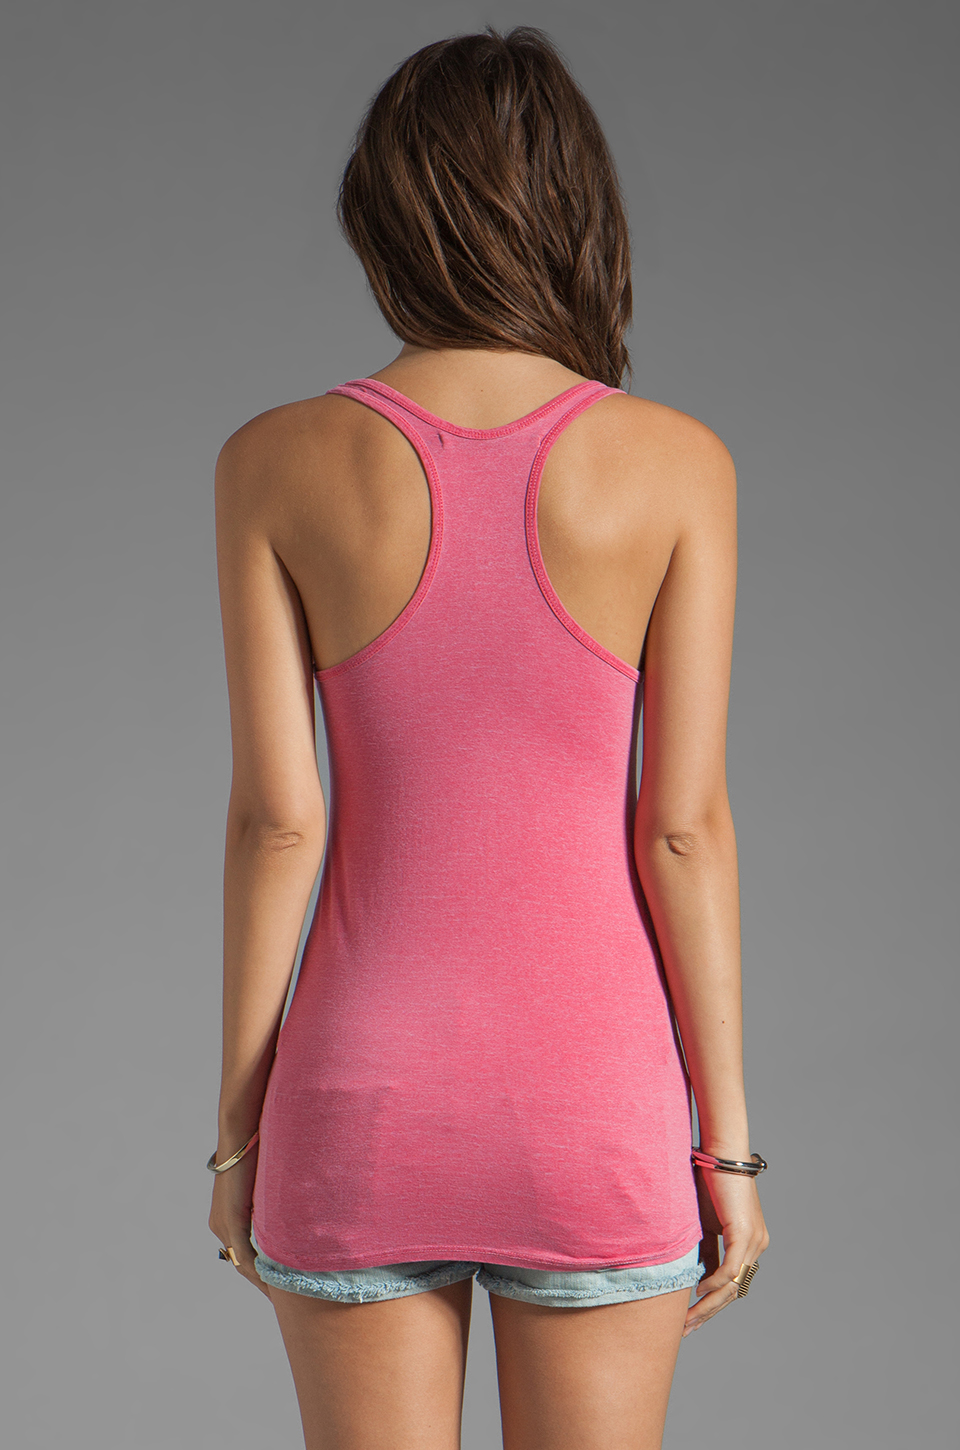 Feel the Piece Terrific Racer V-Neck Tank in Hot